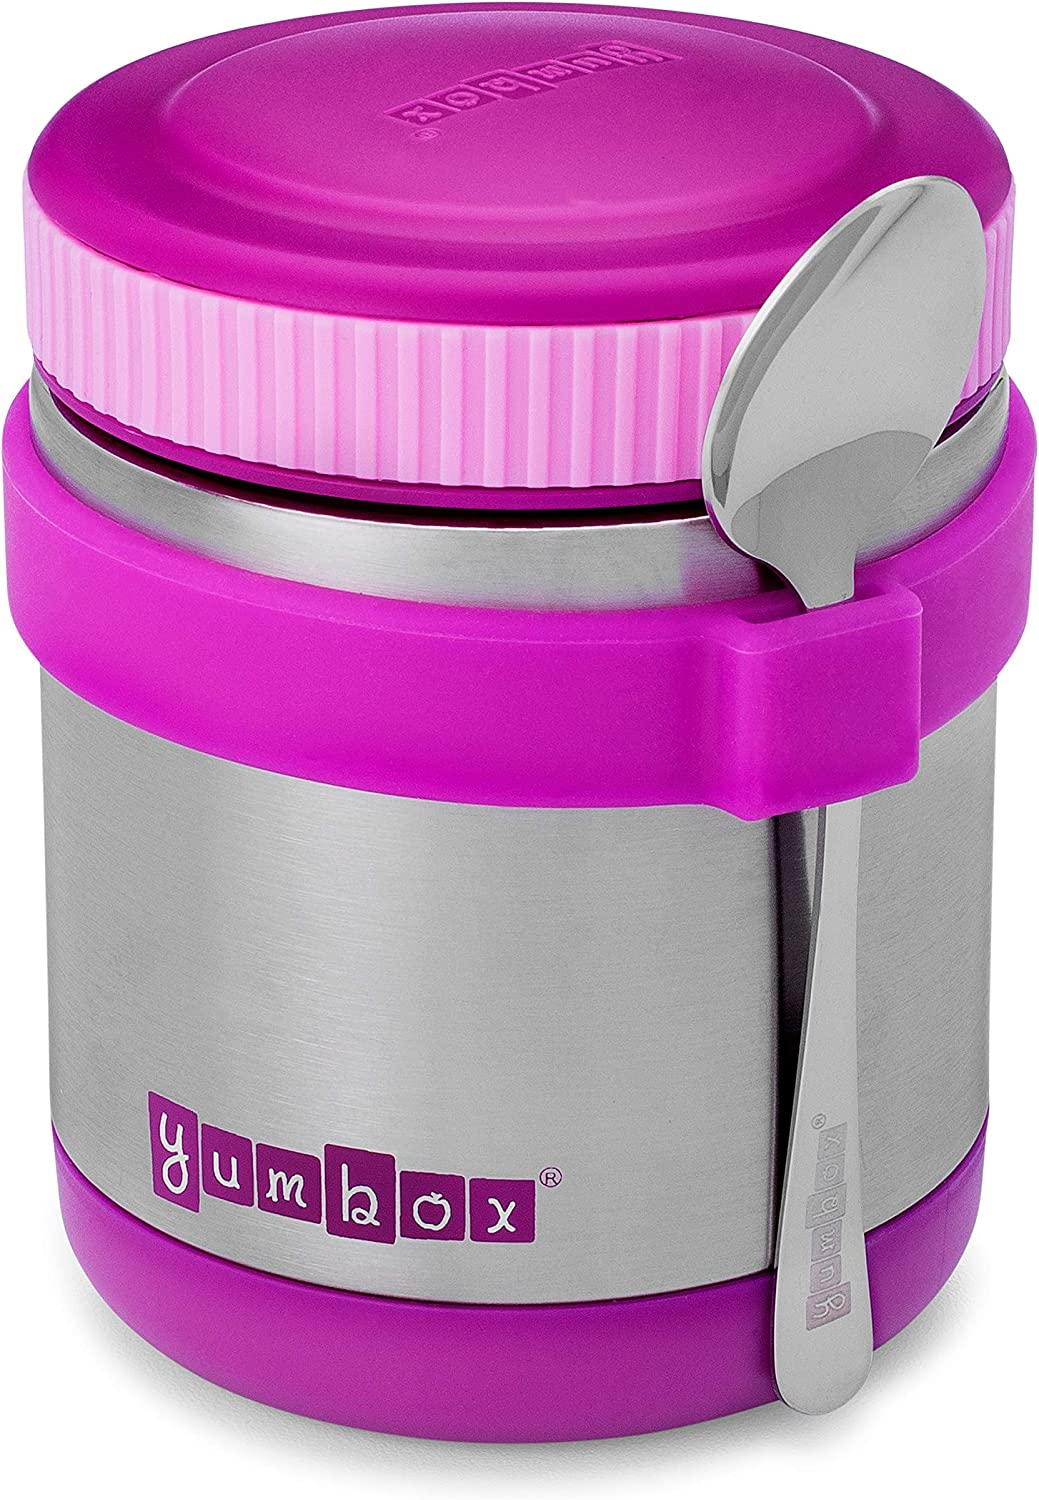 Yumbox Zuppa - Wide Mouth Thermal Food Jar 14 oz. (1.75 cups) with a removable utensil band - Triple Insulated Stainless Steel - Stays Hot 6 Hours or Cold for 12 Hours - Leak Proof - in Bijoux Purple